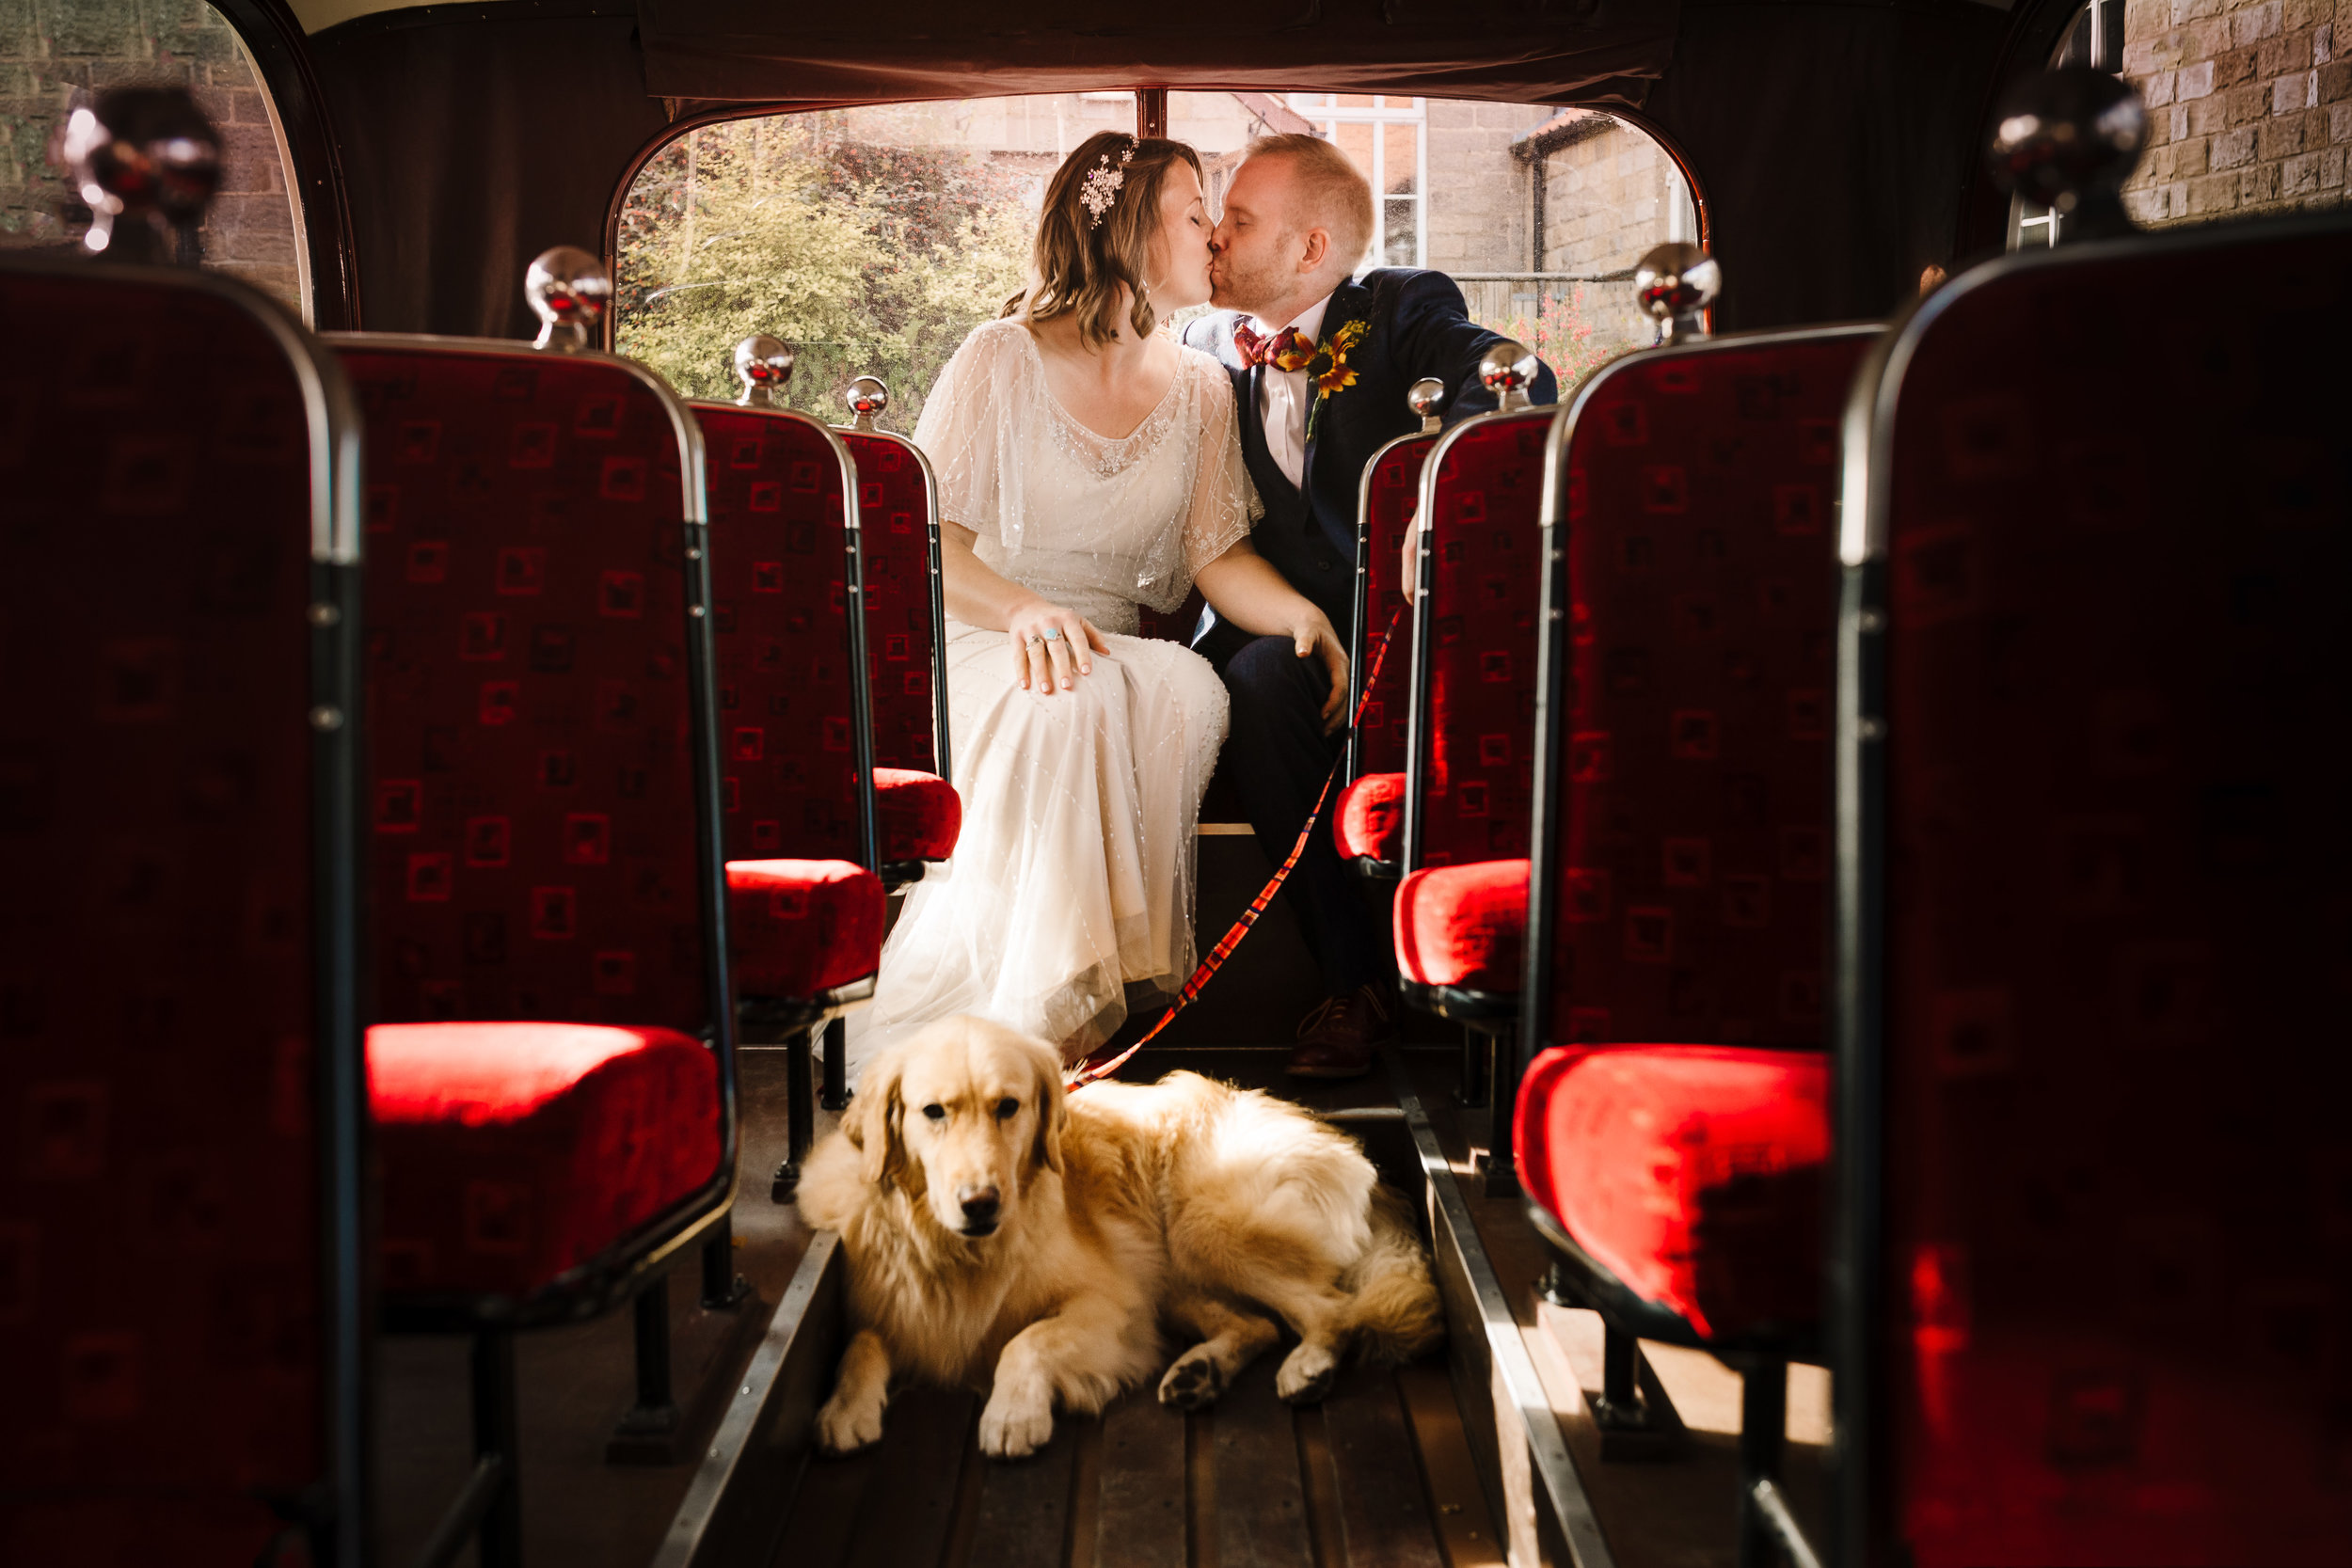 A bride and groom with their dog sat at the back of a vintage bus kissing